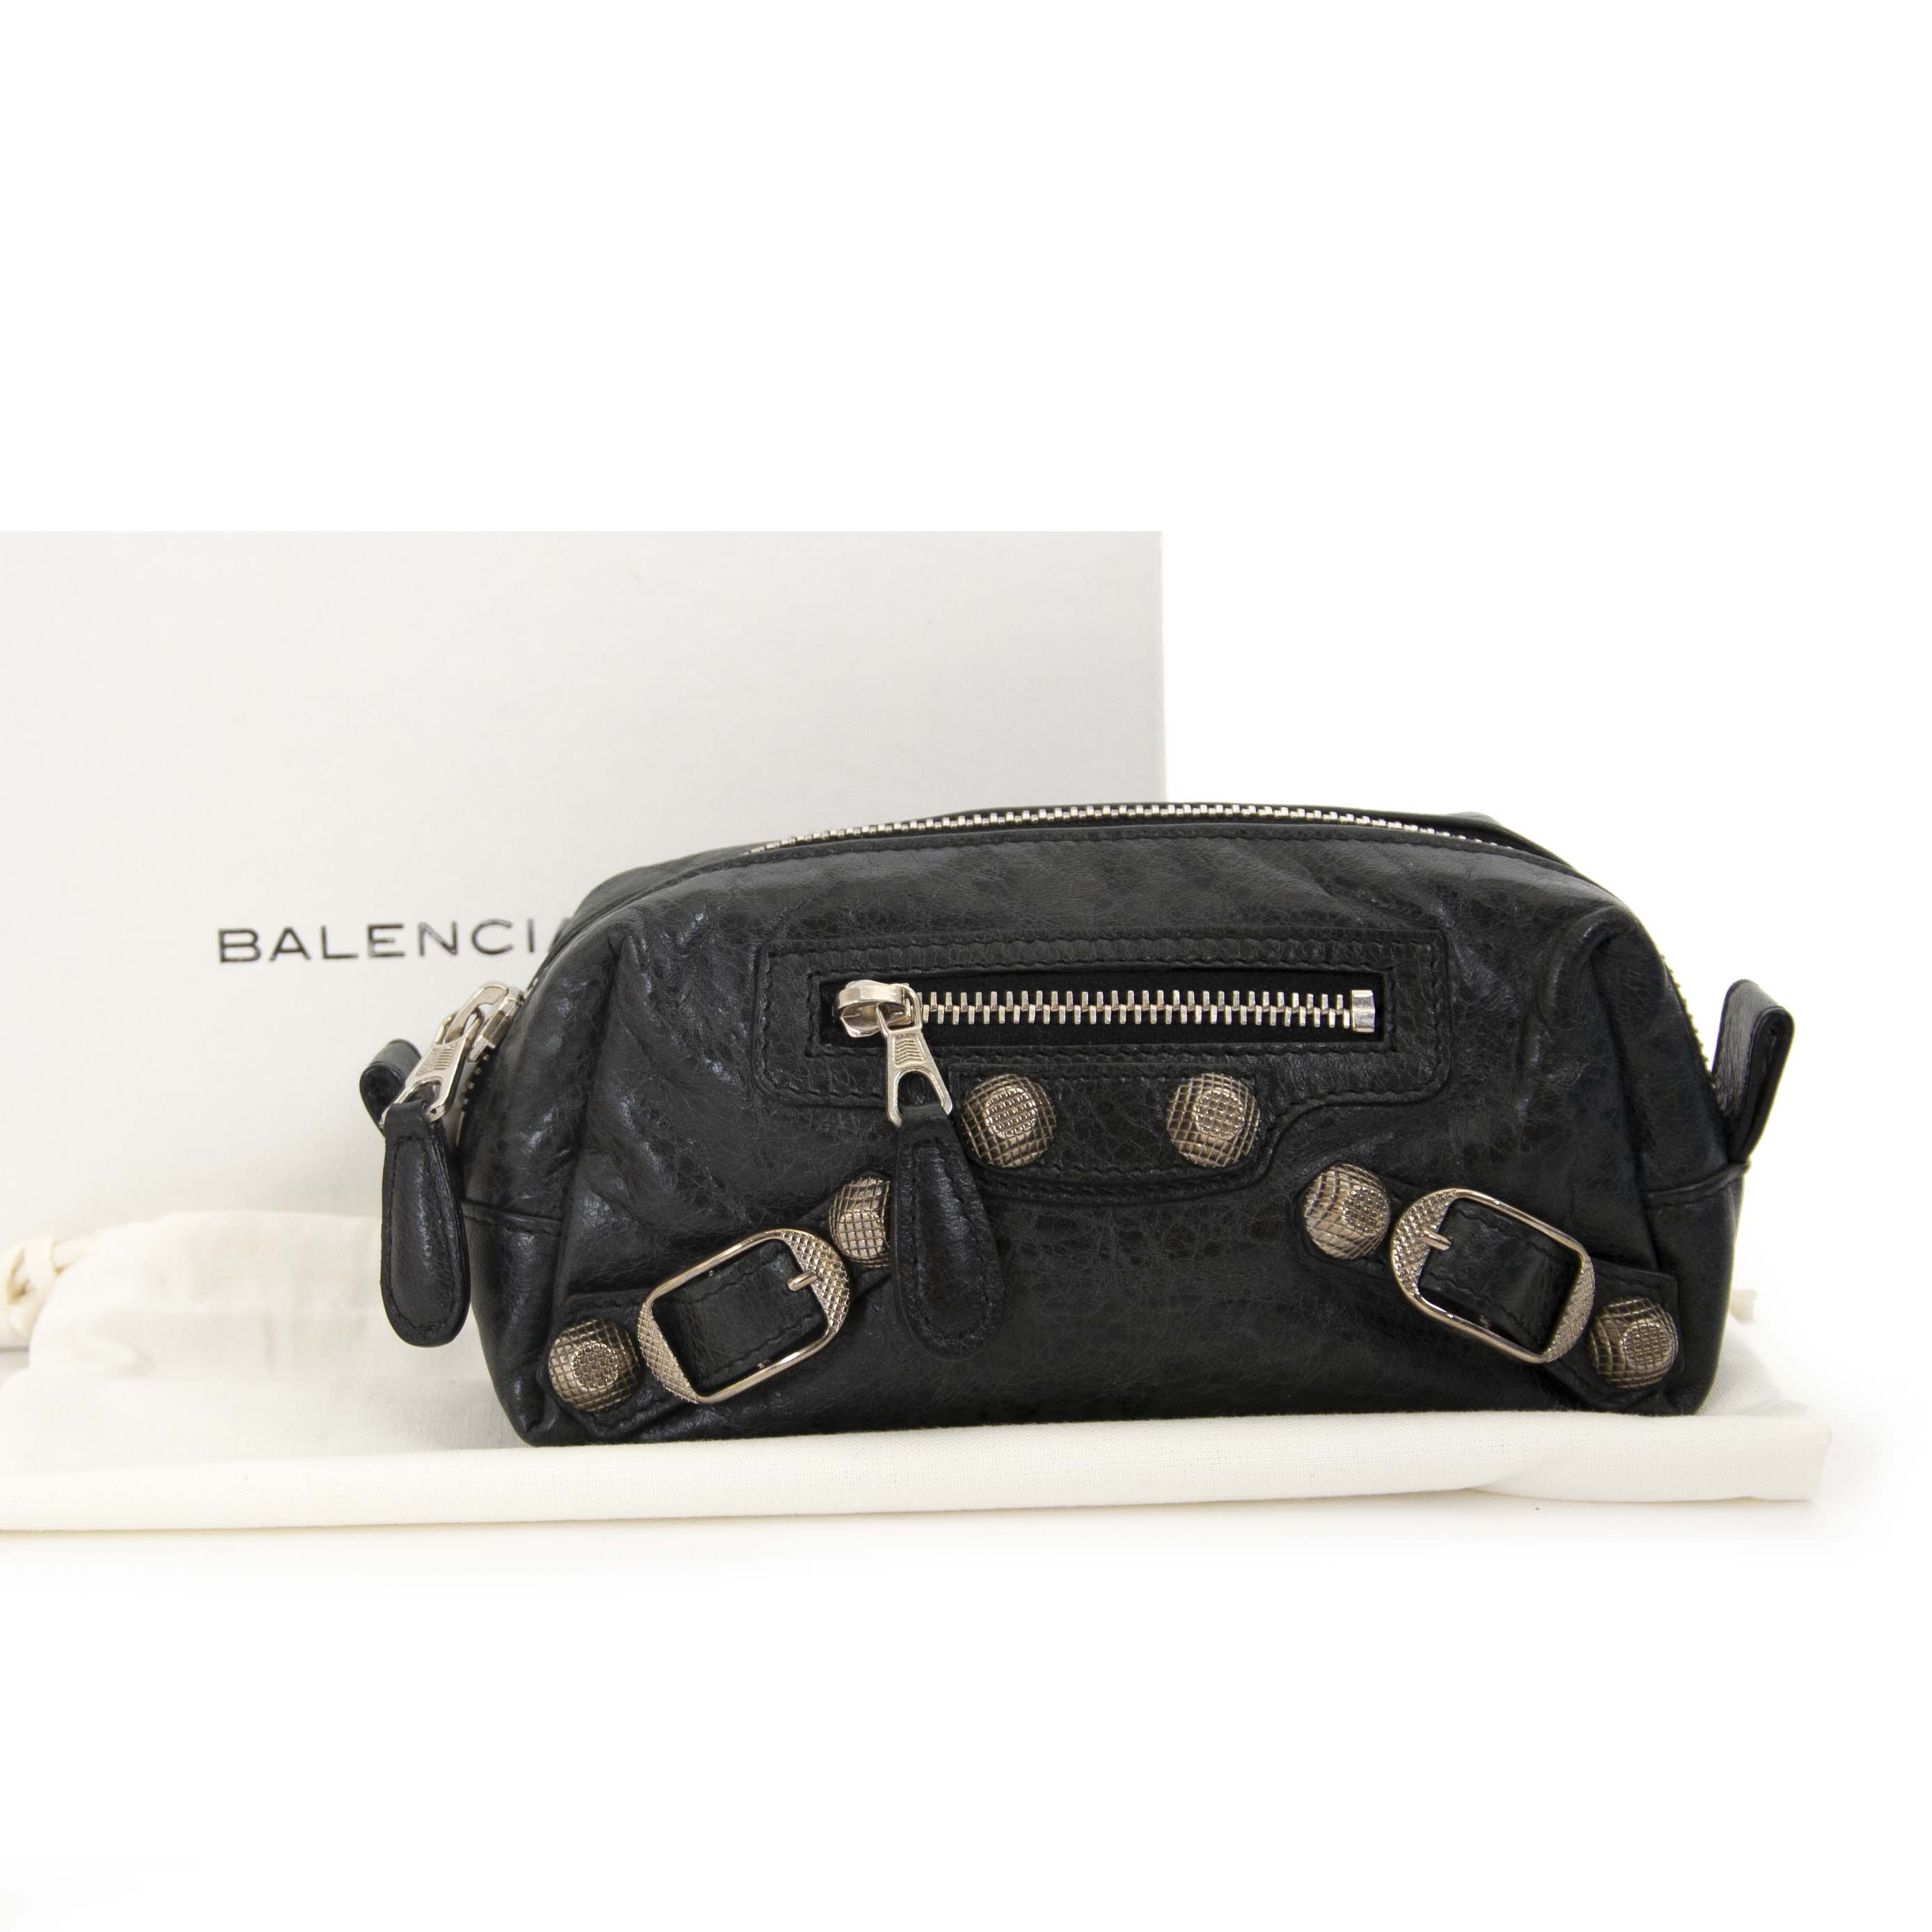 Balenciaga Black Lambskin Leather Giant 12 Pencil Case S now for sale at labellov vintage fashion webshop belgium